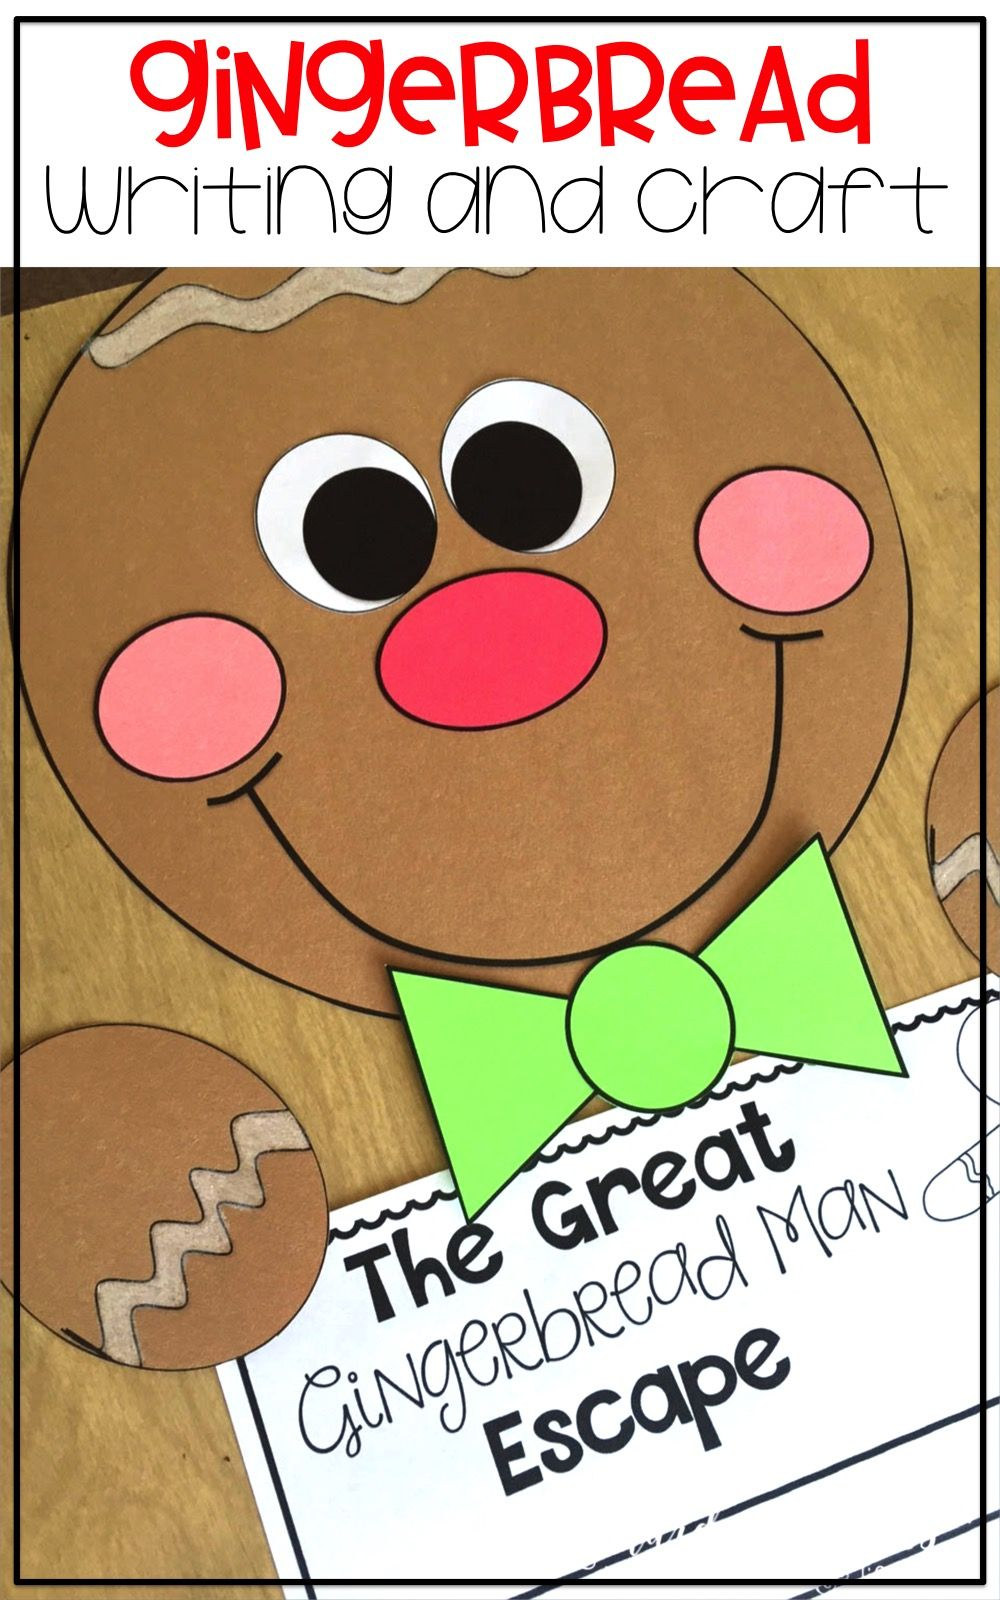 Use This Gingerbread Craft And Writing Activity To Engage